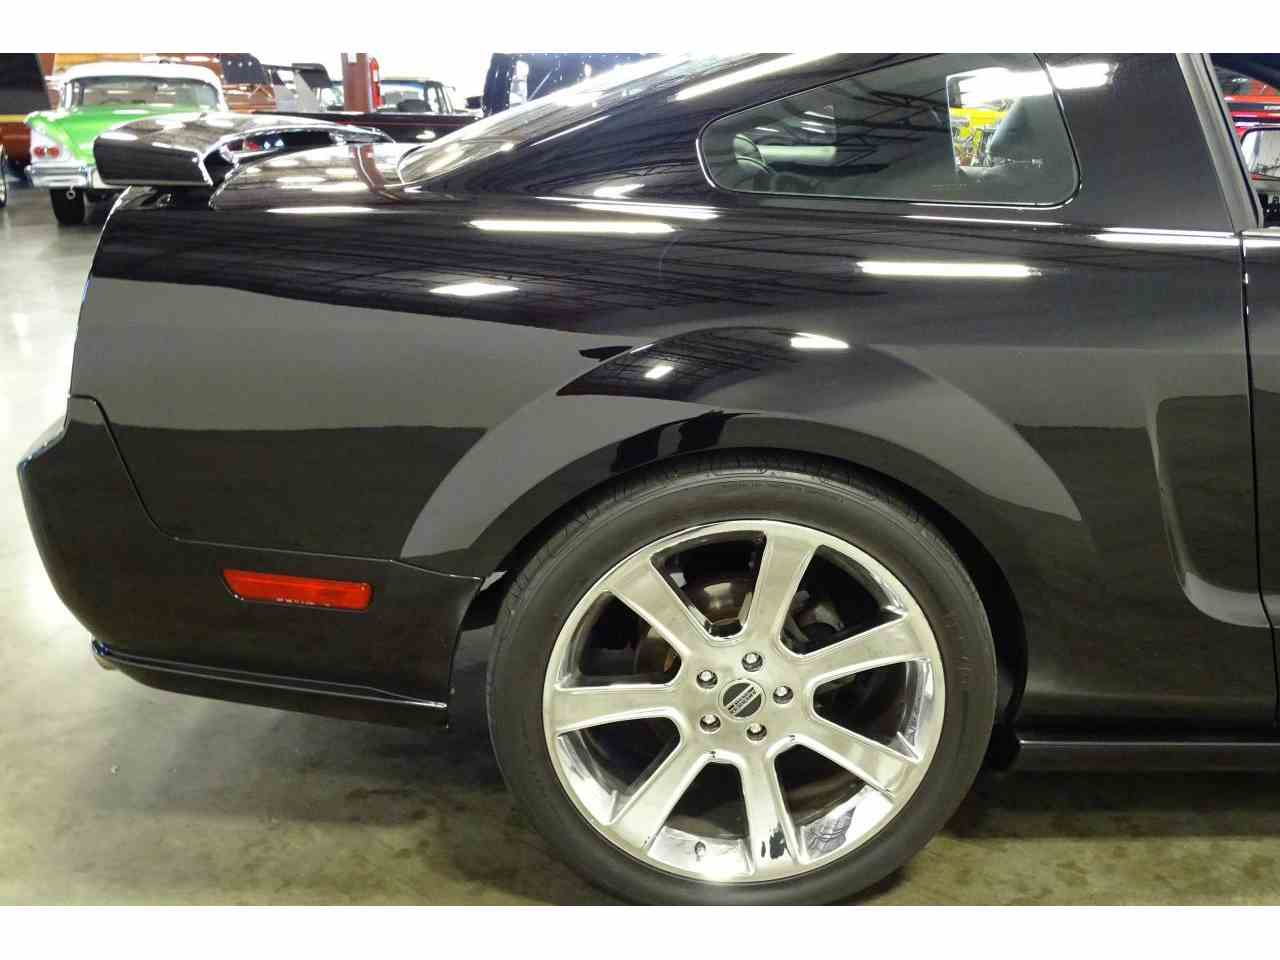 Large Picture of '06 Ford Mustang located in Tennessee - $15,595.00 - MFDI